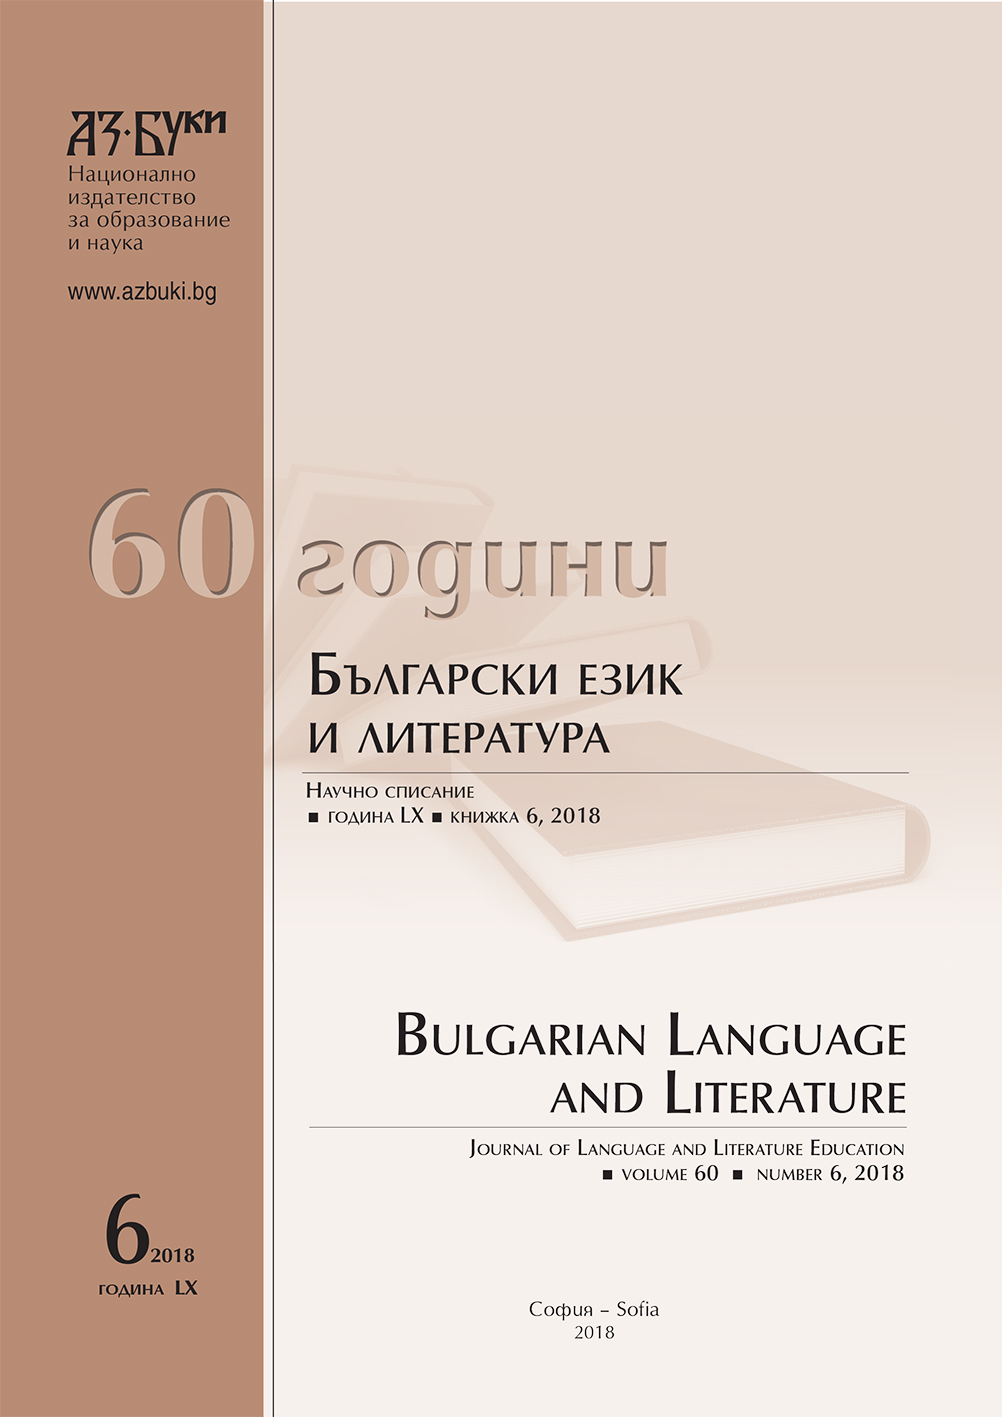 The Own – Foreing Problem аnd the Model of the Bulgarian Literary Language During the Revival Cover Image